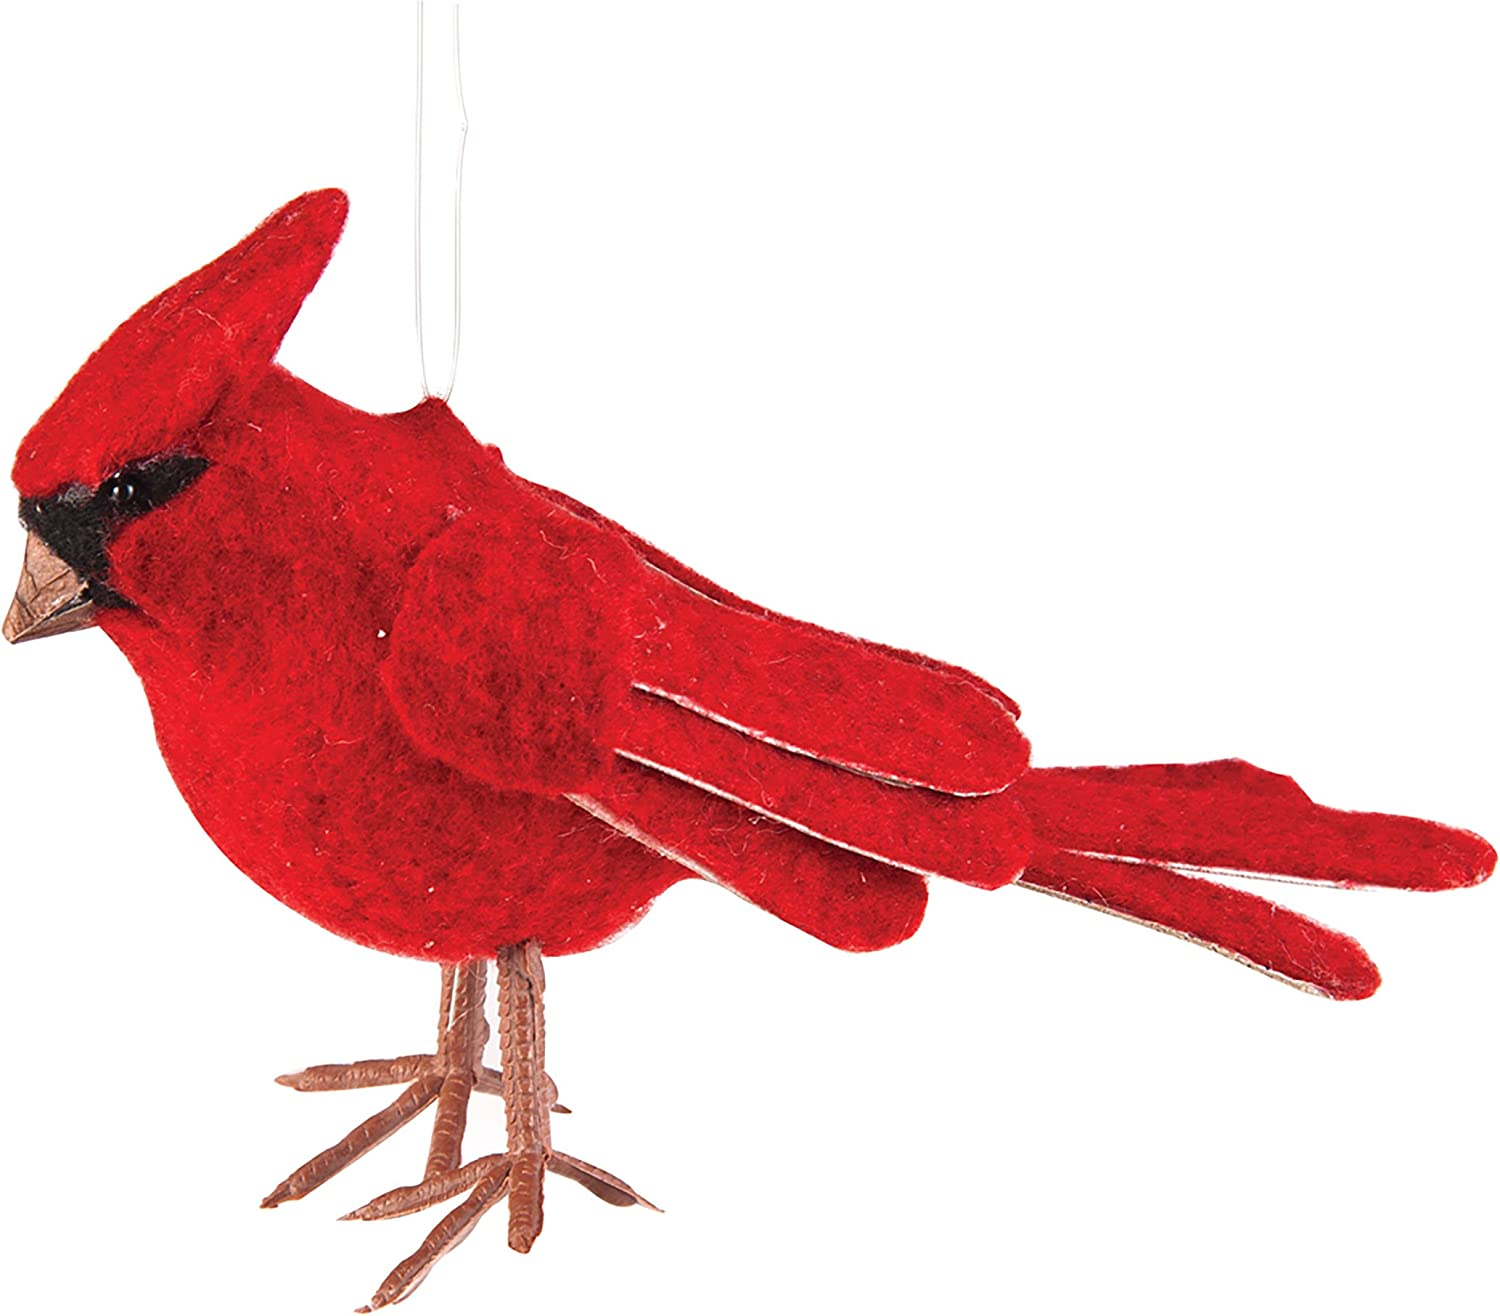 felt ornament Christmas ornament red bird red ornament Nordic red bird white white bird white embroidery red button eye ornament